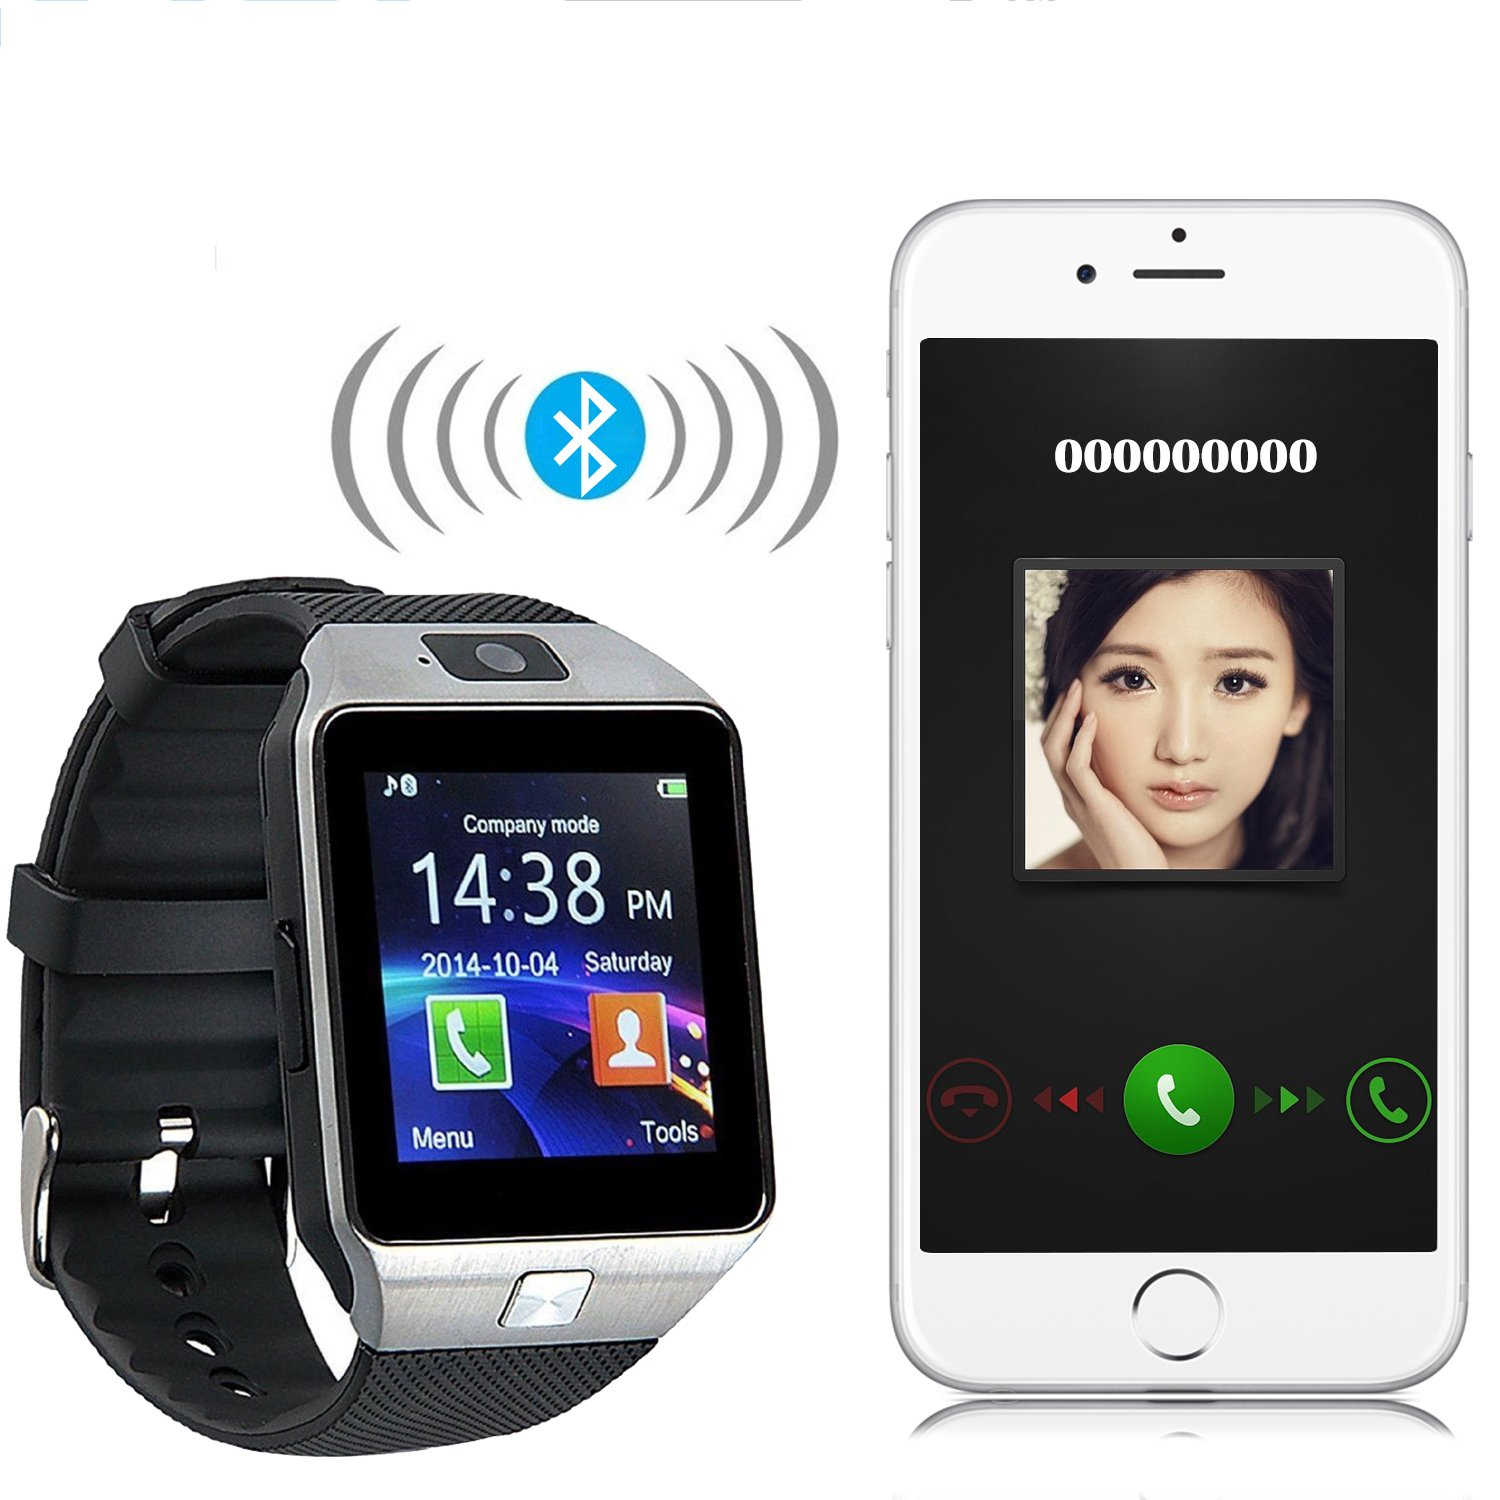 GZDL Bluetooth Smart Watch DZ09 Smartwatch GSM SIM Card With Camera For Android IOS Black by GZDL: Amazon.es: Electrónica